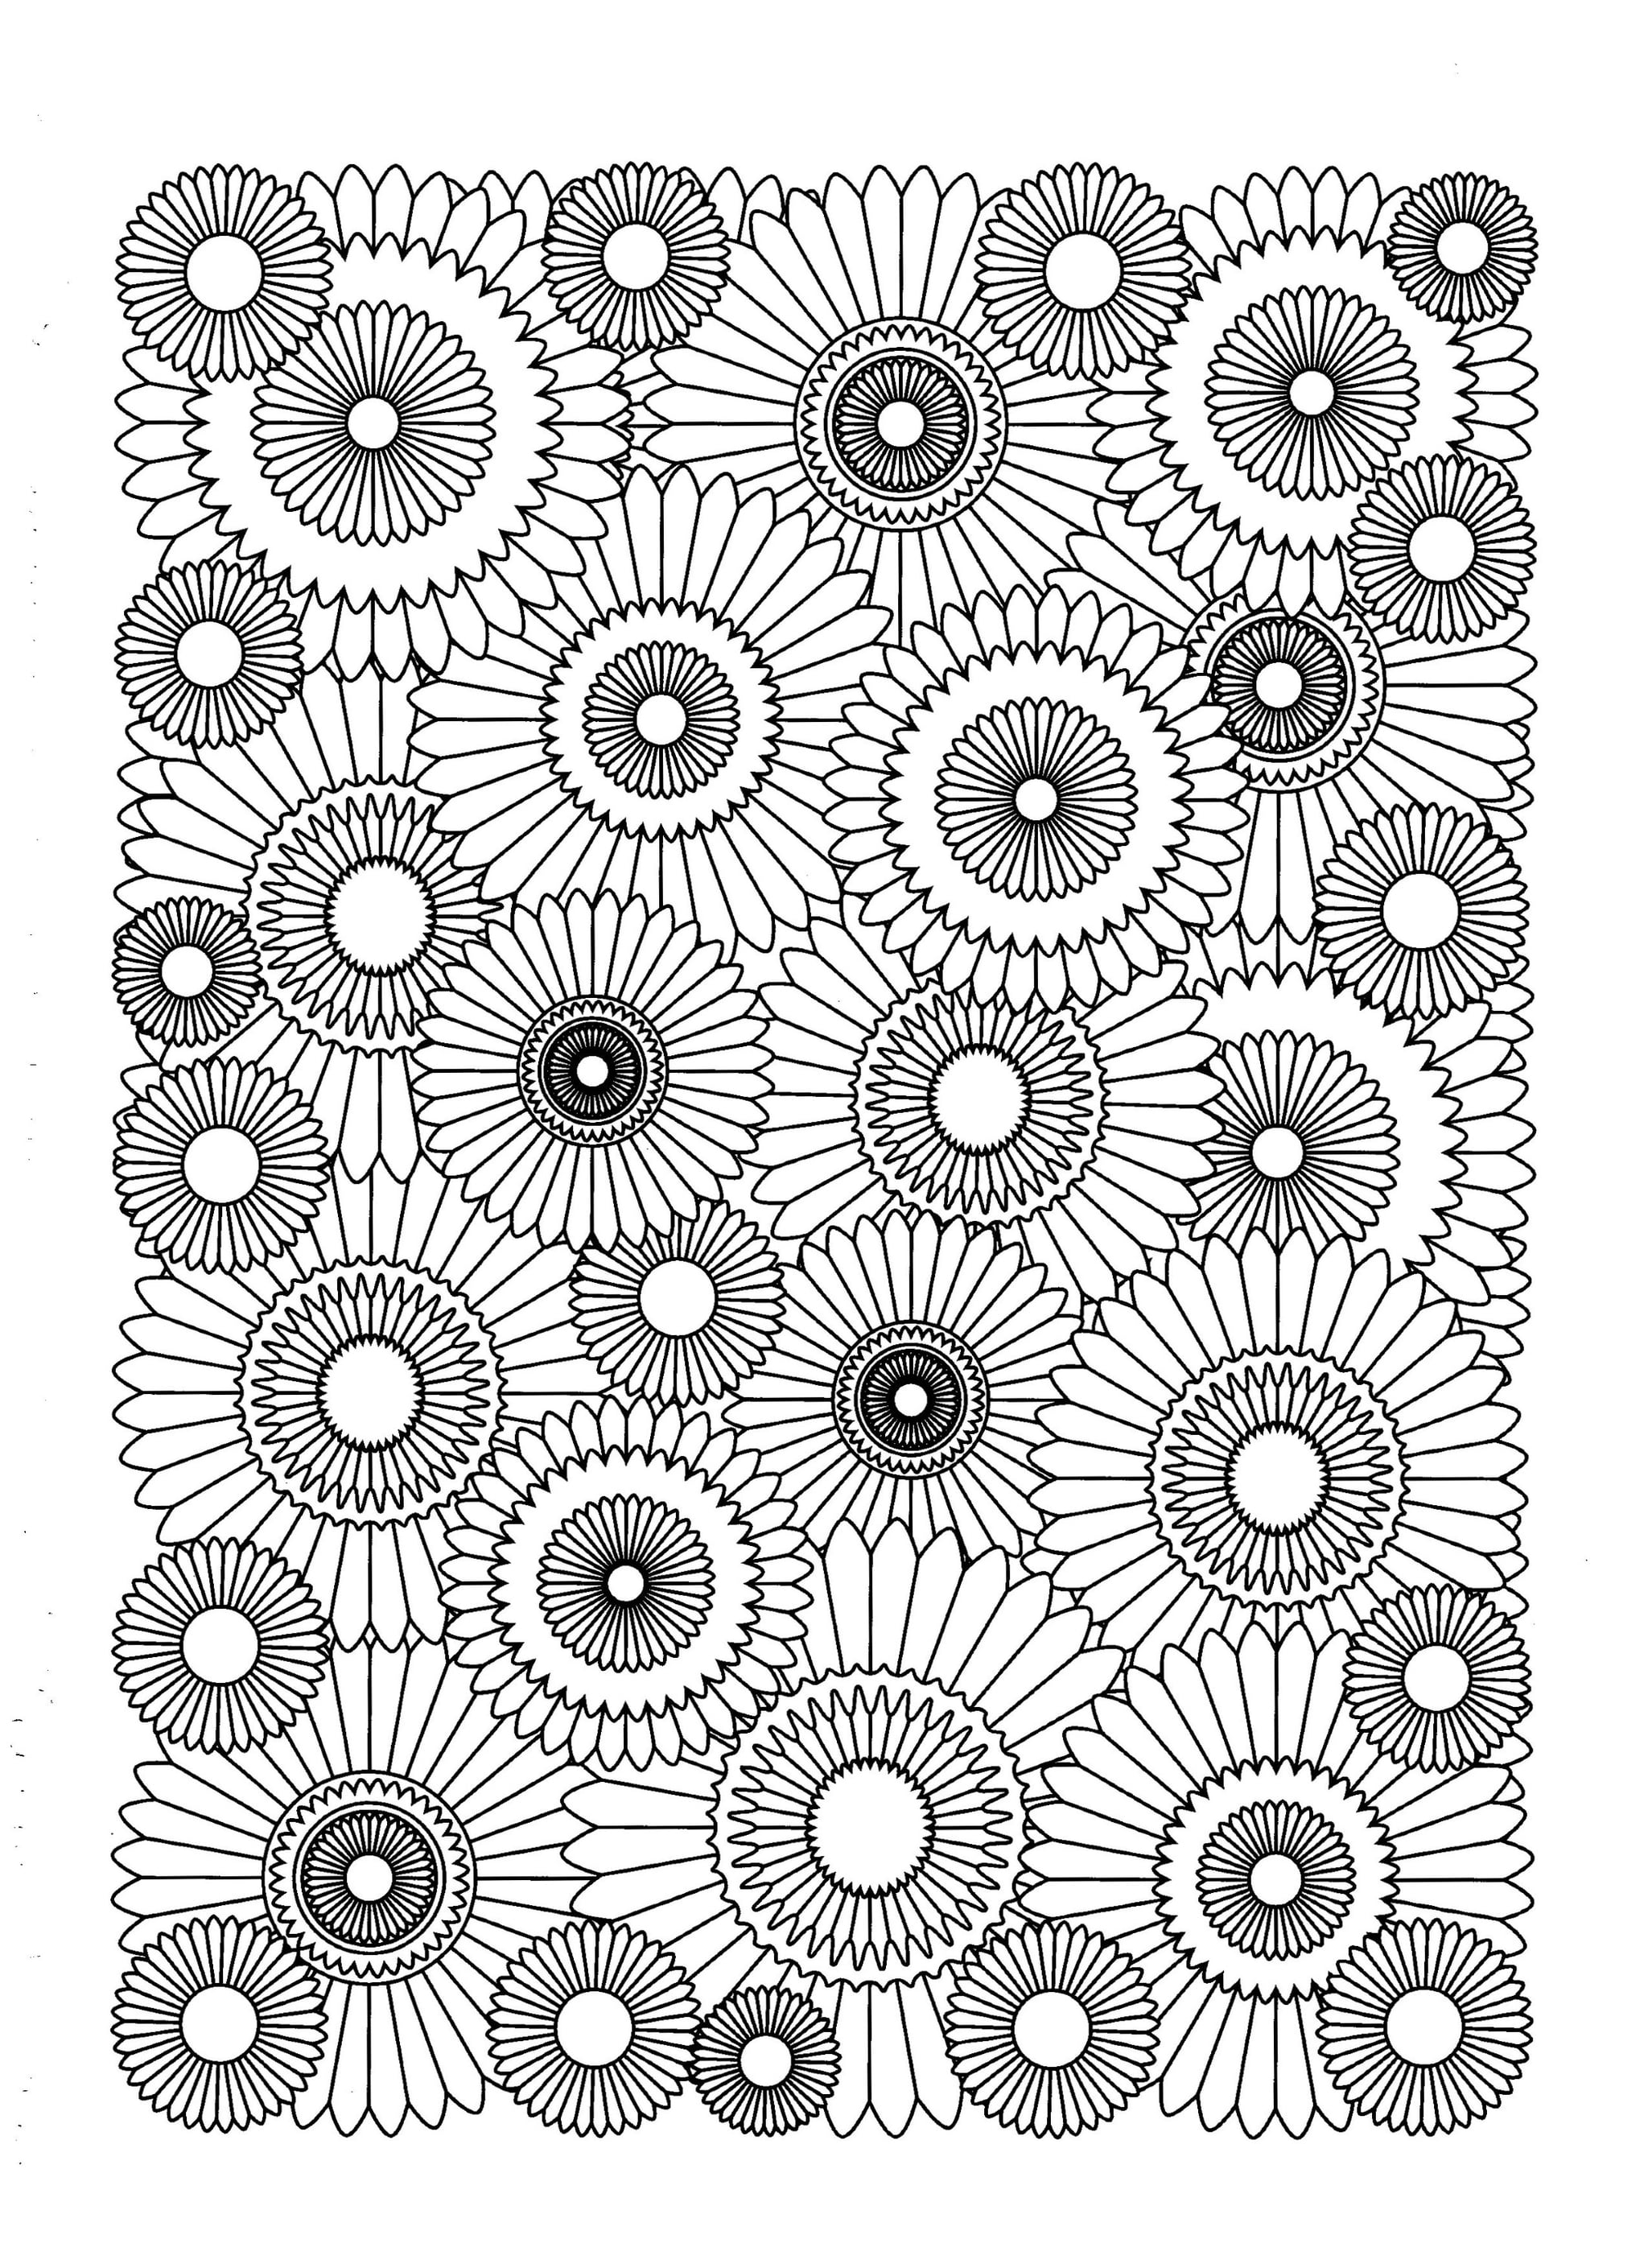 printable coloring pages for adults flowers free printable floral coloring page ausdruckbare printable for pages flowers coloring adults